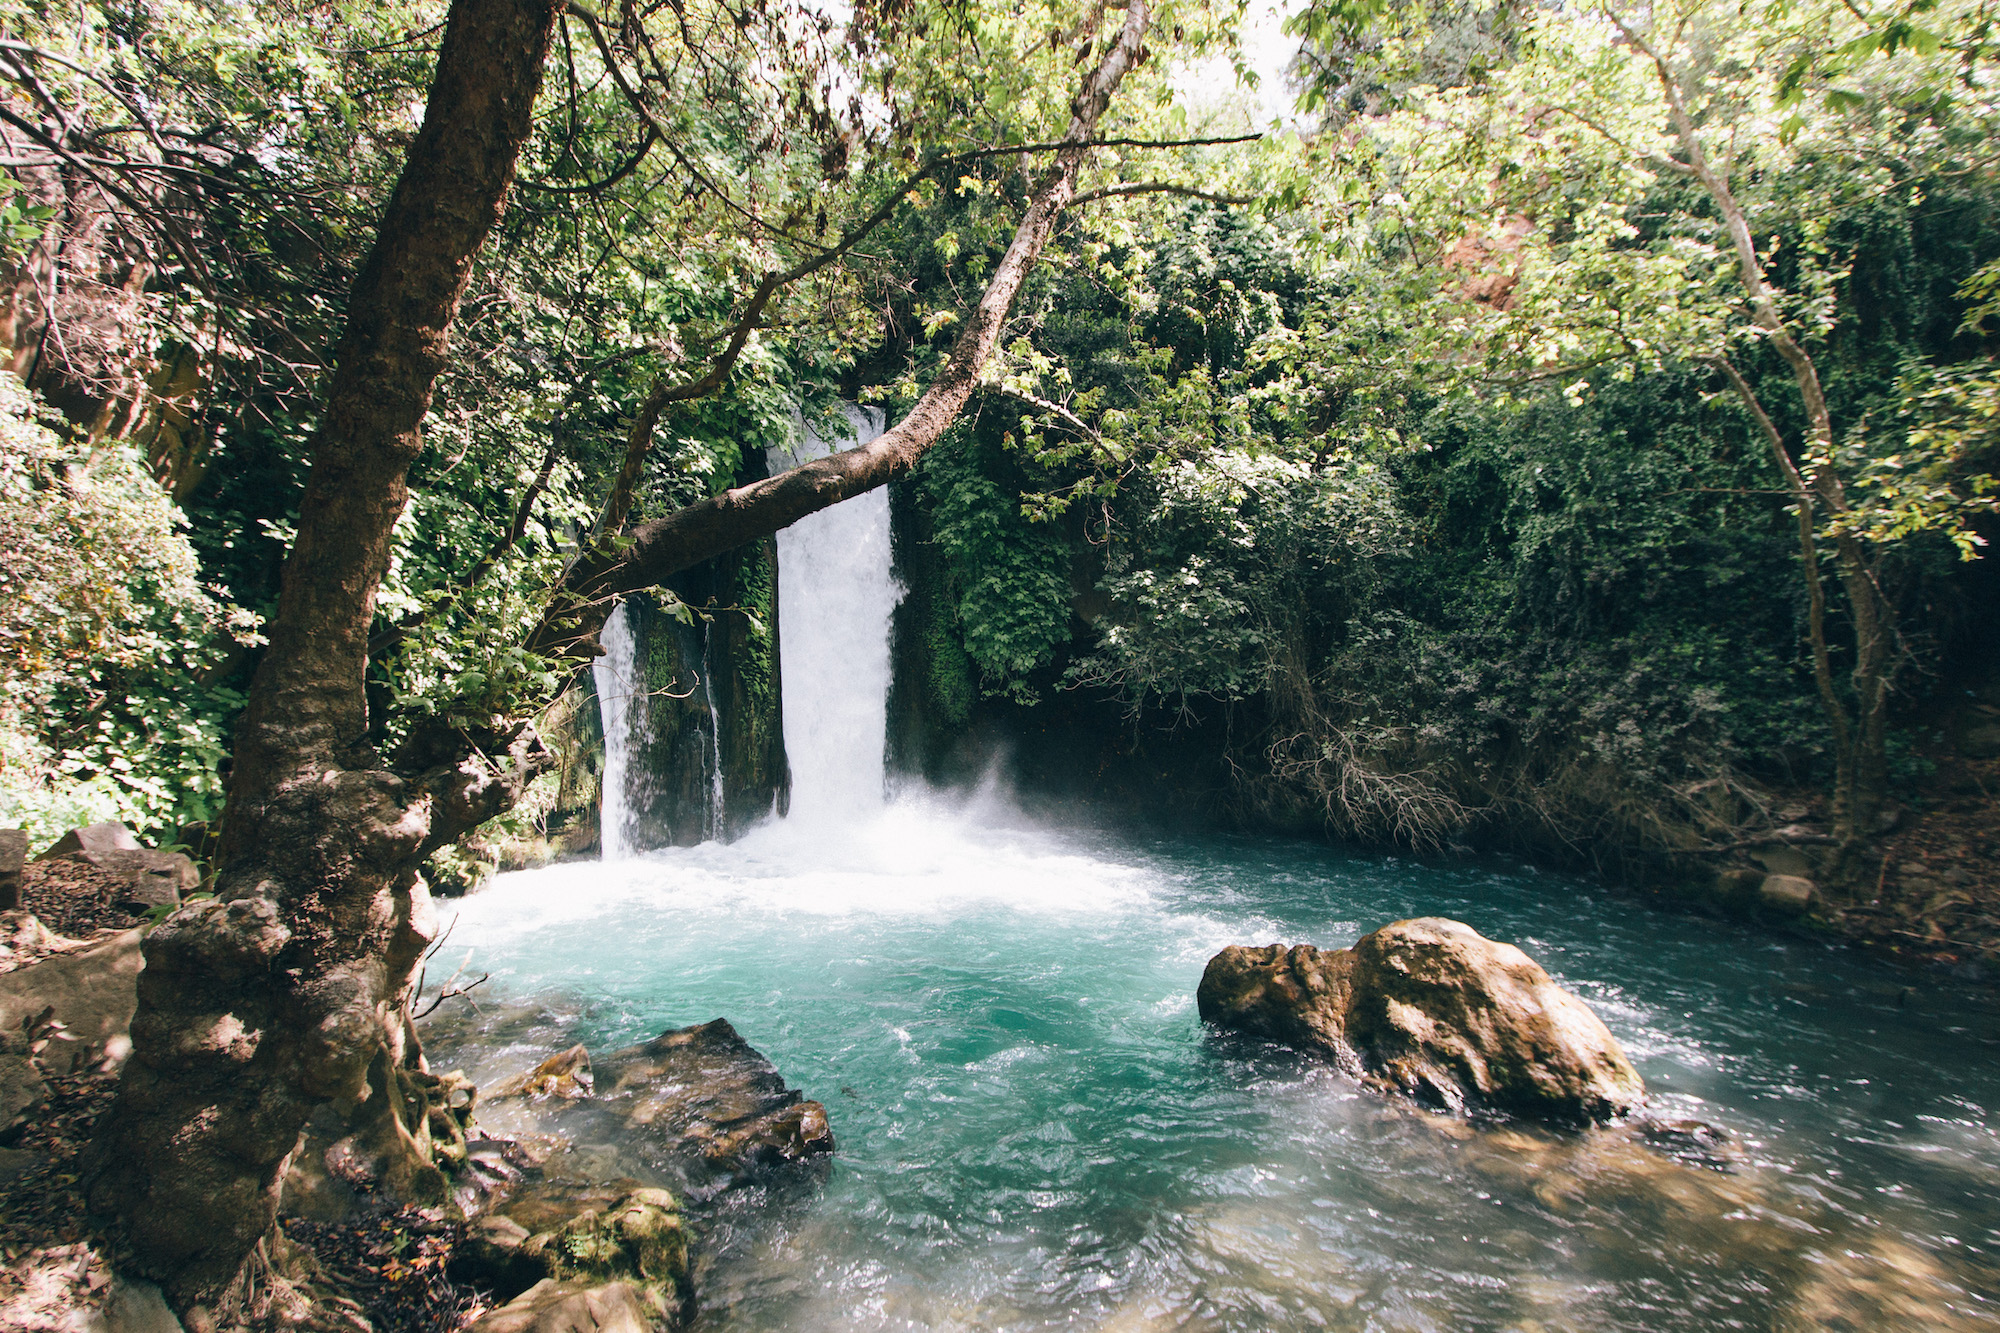 The waterfalls - Walking through the Benias Nature Reserve meant we got to see some amazing waterfalls and old mills, not to mention the ruins of Caesarea Philippi which date back to 20BC.